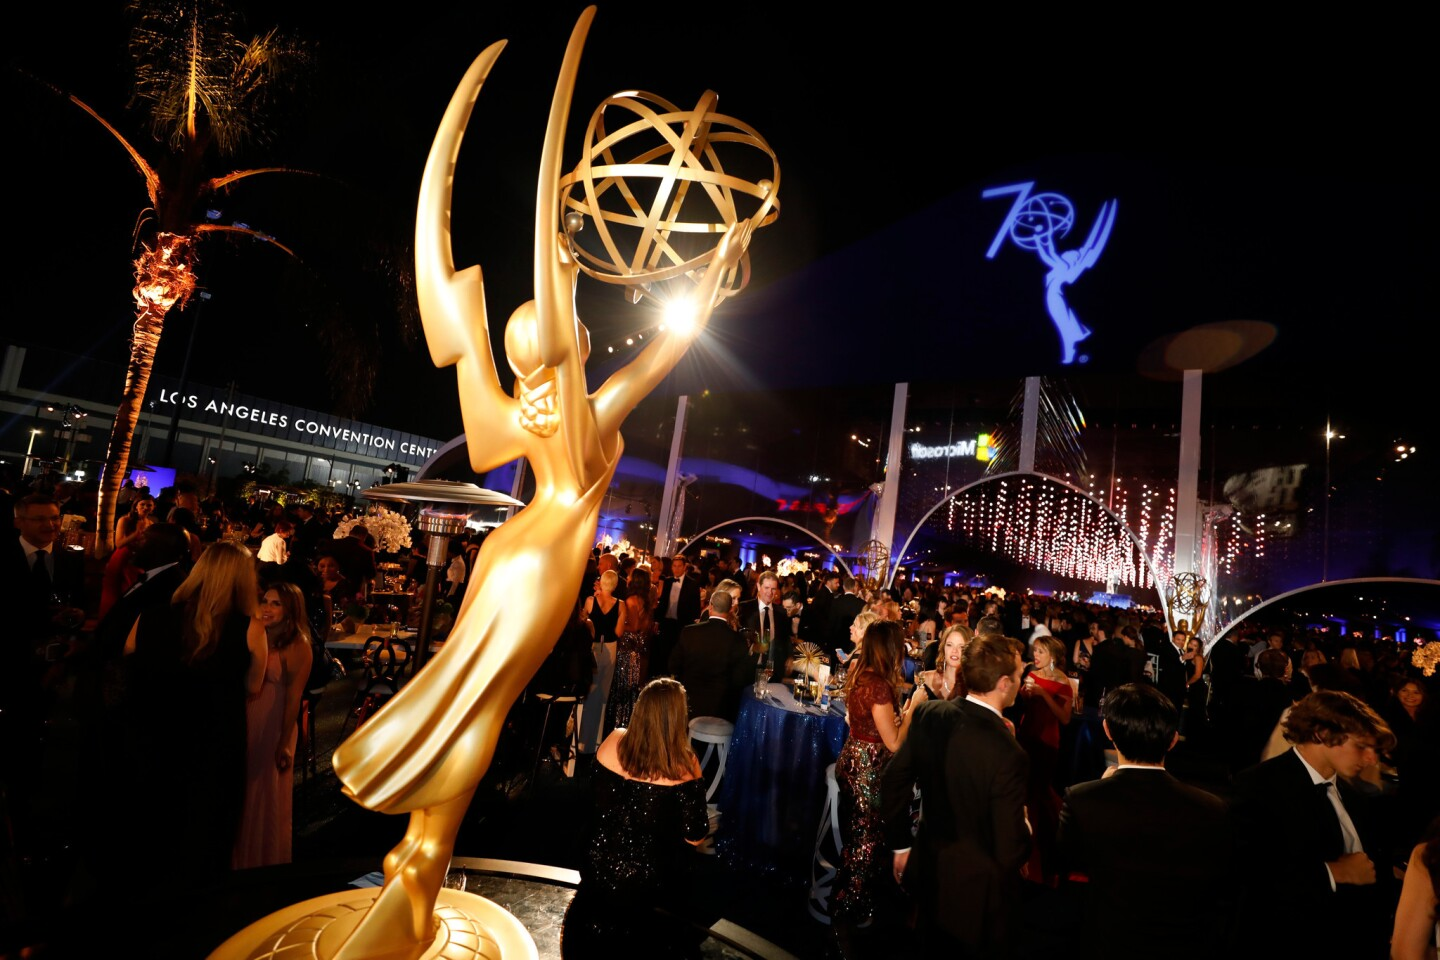 The scene at the Governors Ball on the L.A. LIVE Event Deck after the 70th Primetime Emmy Awards.